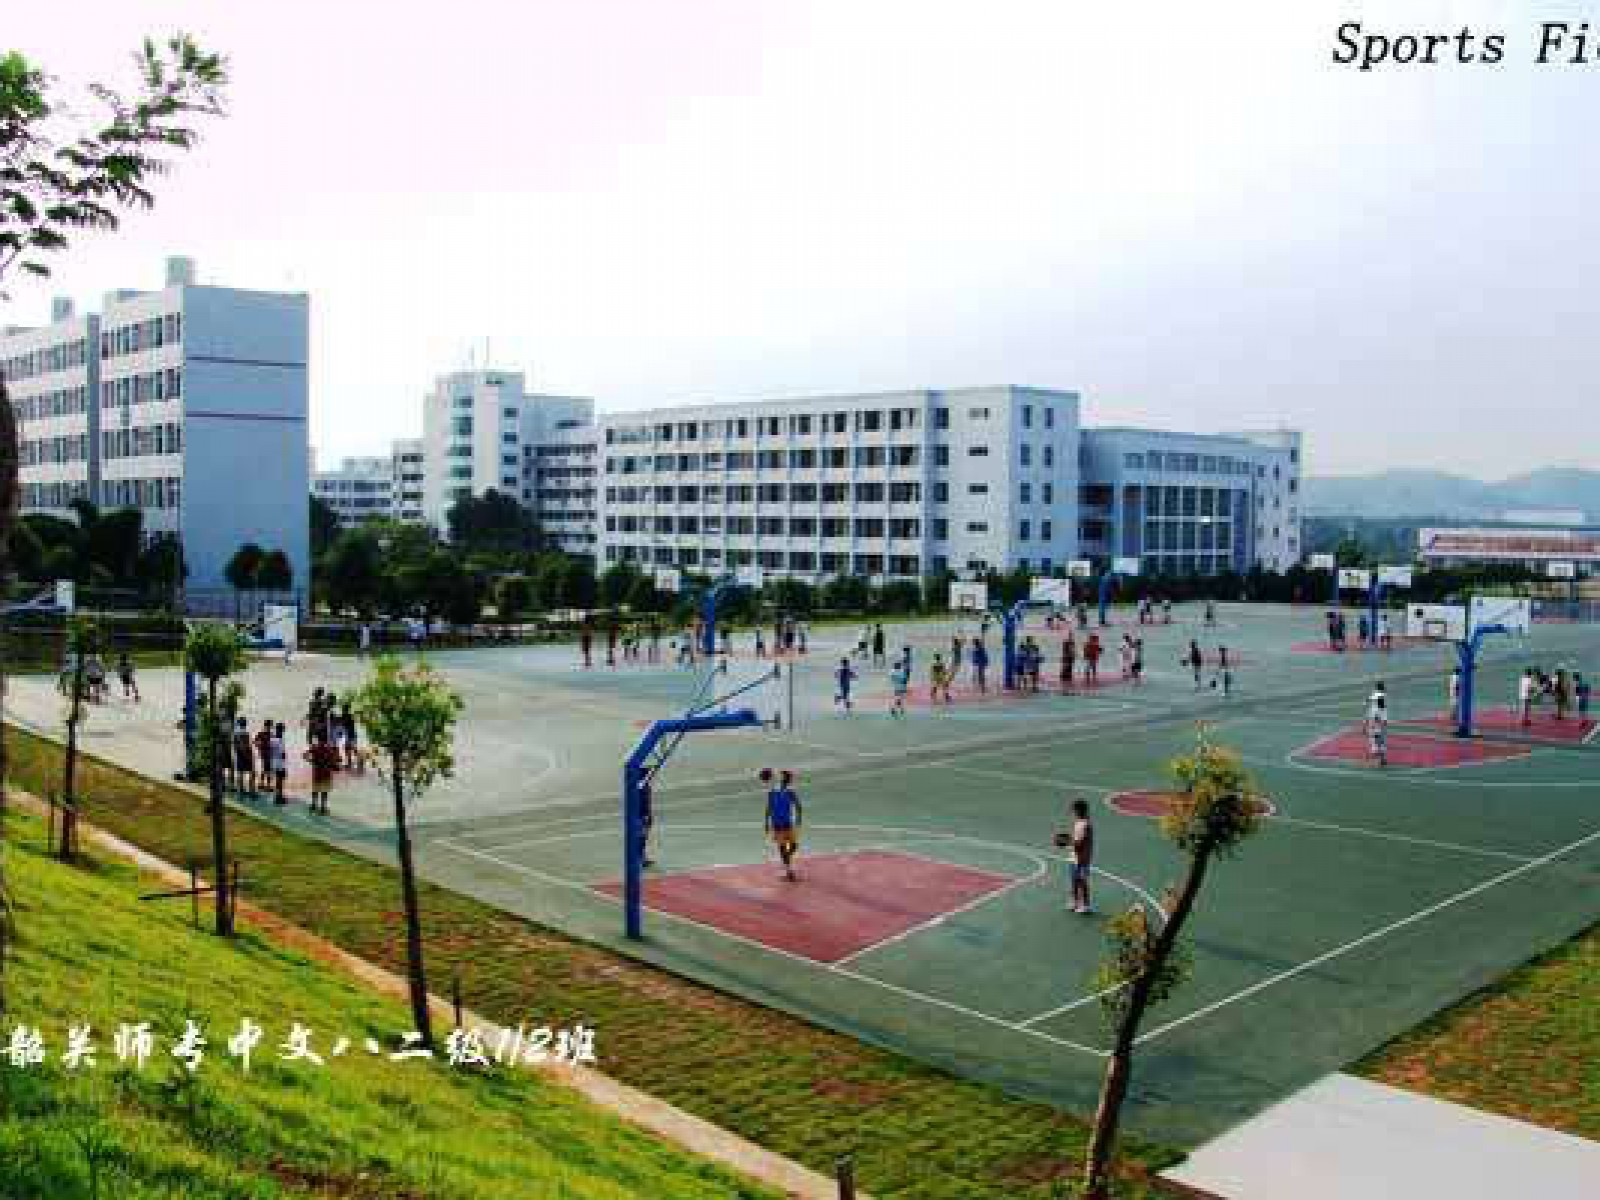 Southern District Basketball Courts, Shaoguan, China